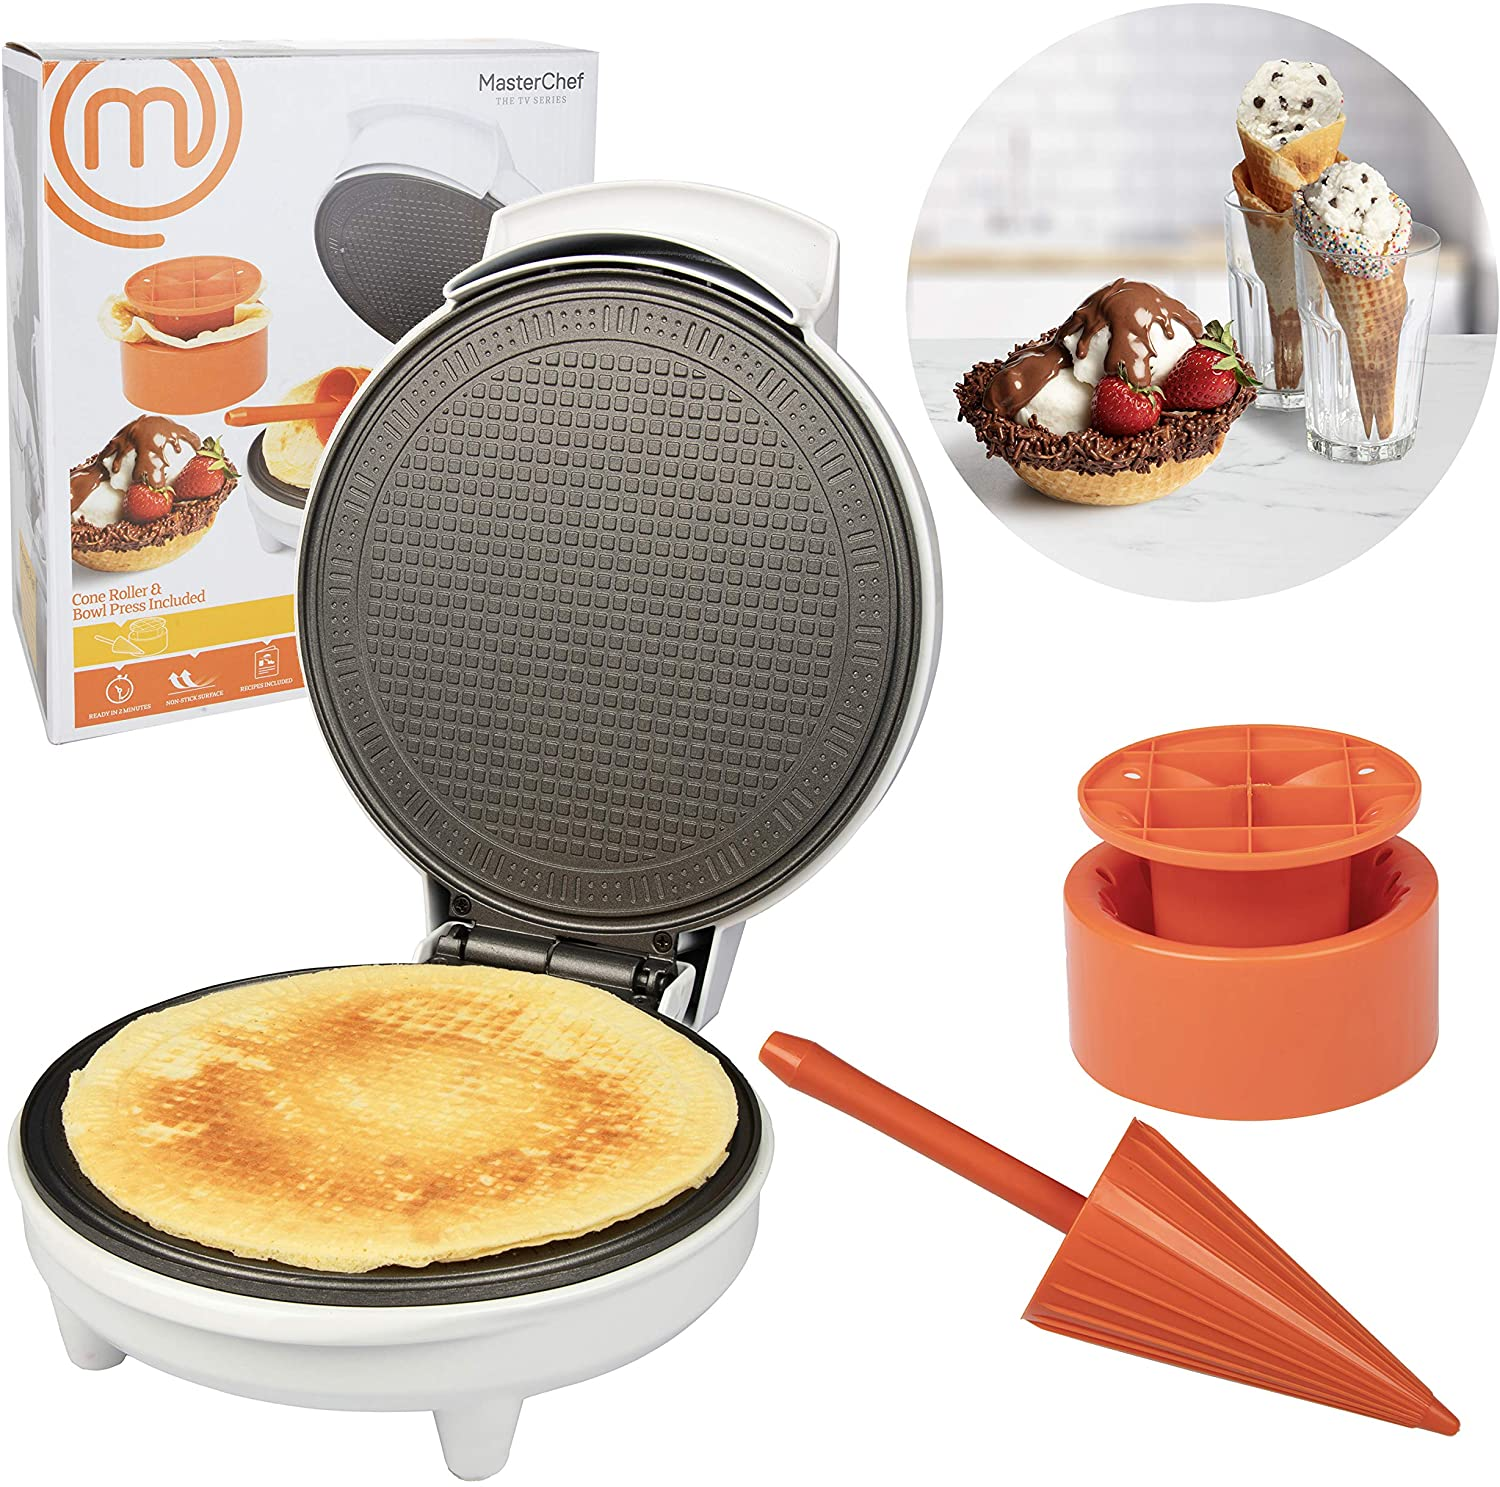 Chefmaster MasterChef Waffle Cone and Bowl Maker- Includes Shaper Roller and Bowl Press- Homemade Ice Cream Cone Baking Iron Machine, Fun Kitchen Appliance for Summer Parties & Gift Giving